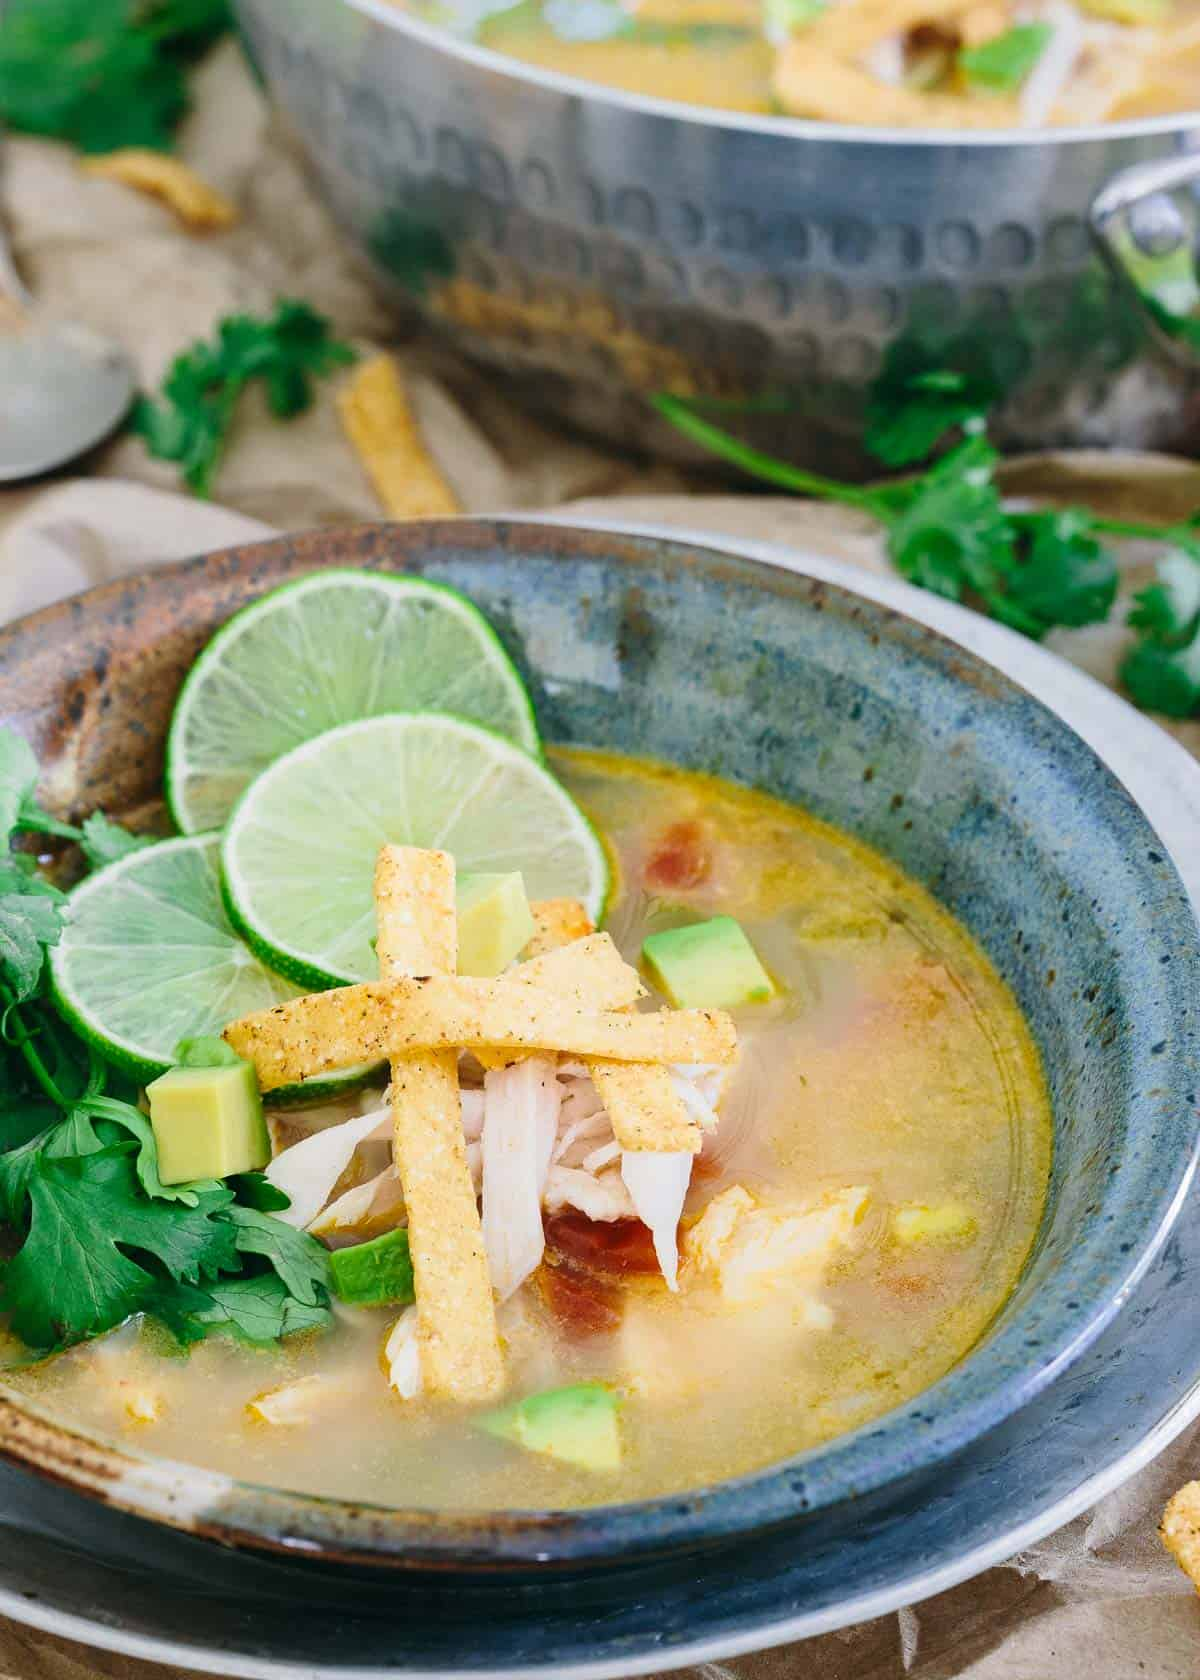 Sopa de Lima is light, refreshing and a simple classic Mexican recipe.